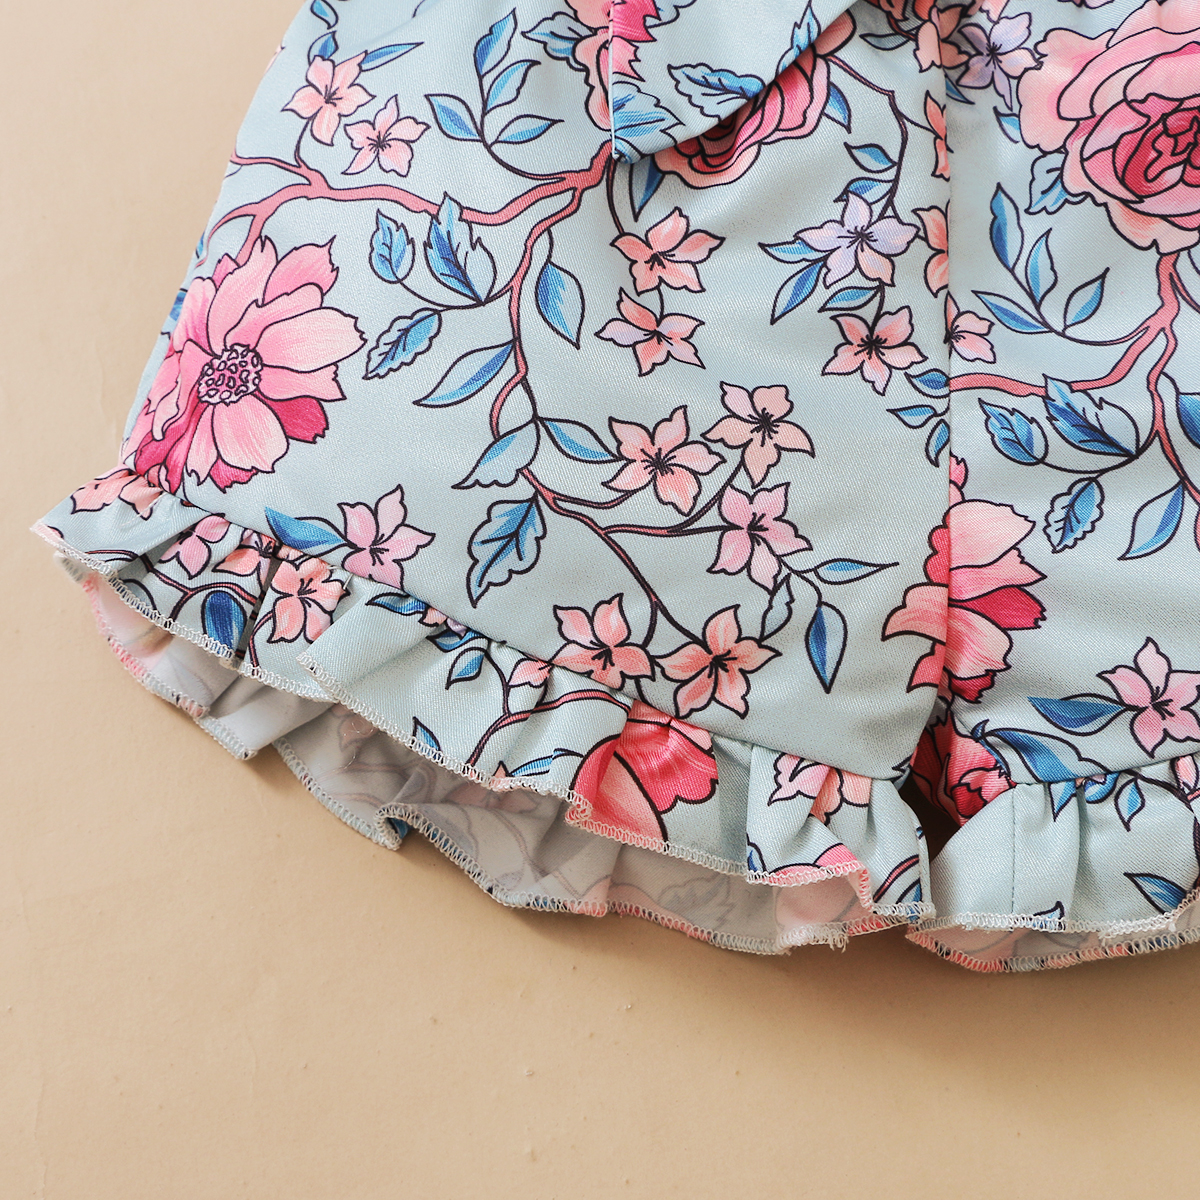 3Pcs Newborn Baby Girls Summer Clothes Cute Beach Boho Strap Ruffle Romper Floral Shorts Toddler Outfit Baby Girls Clothing 6